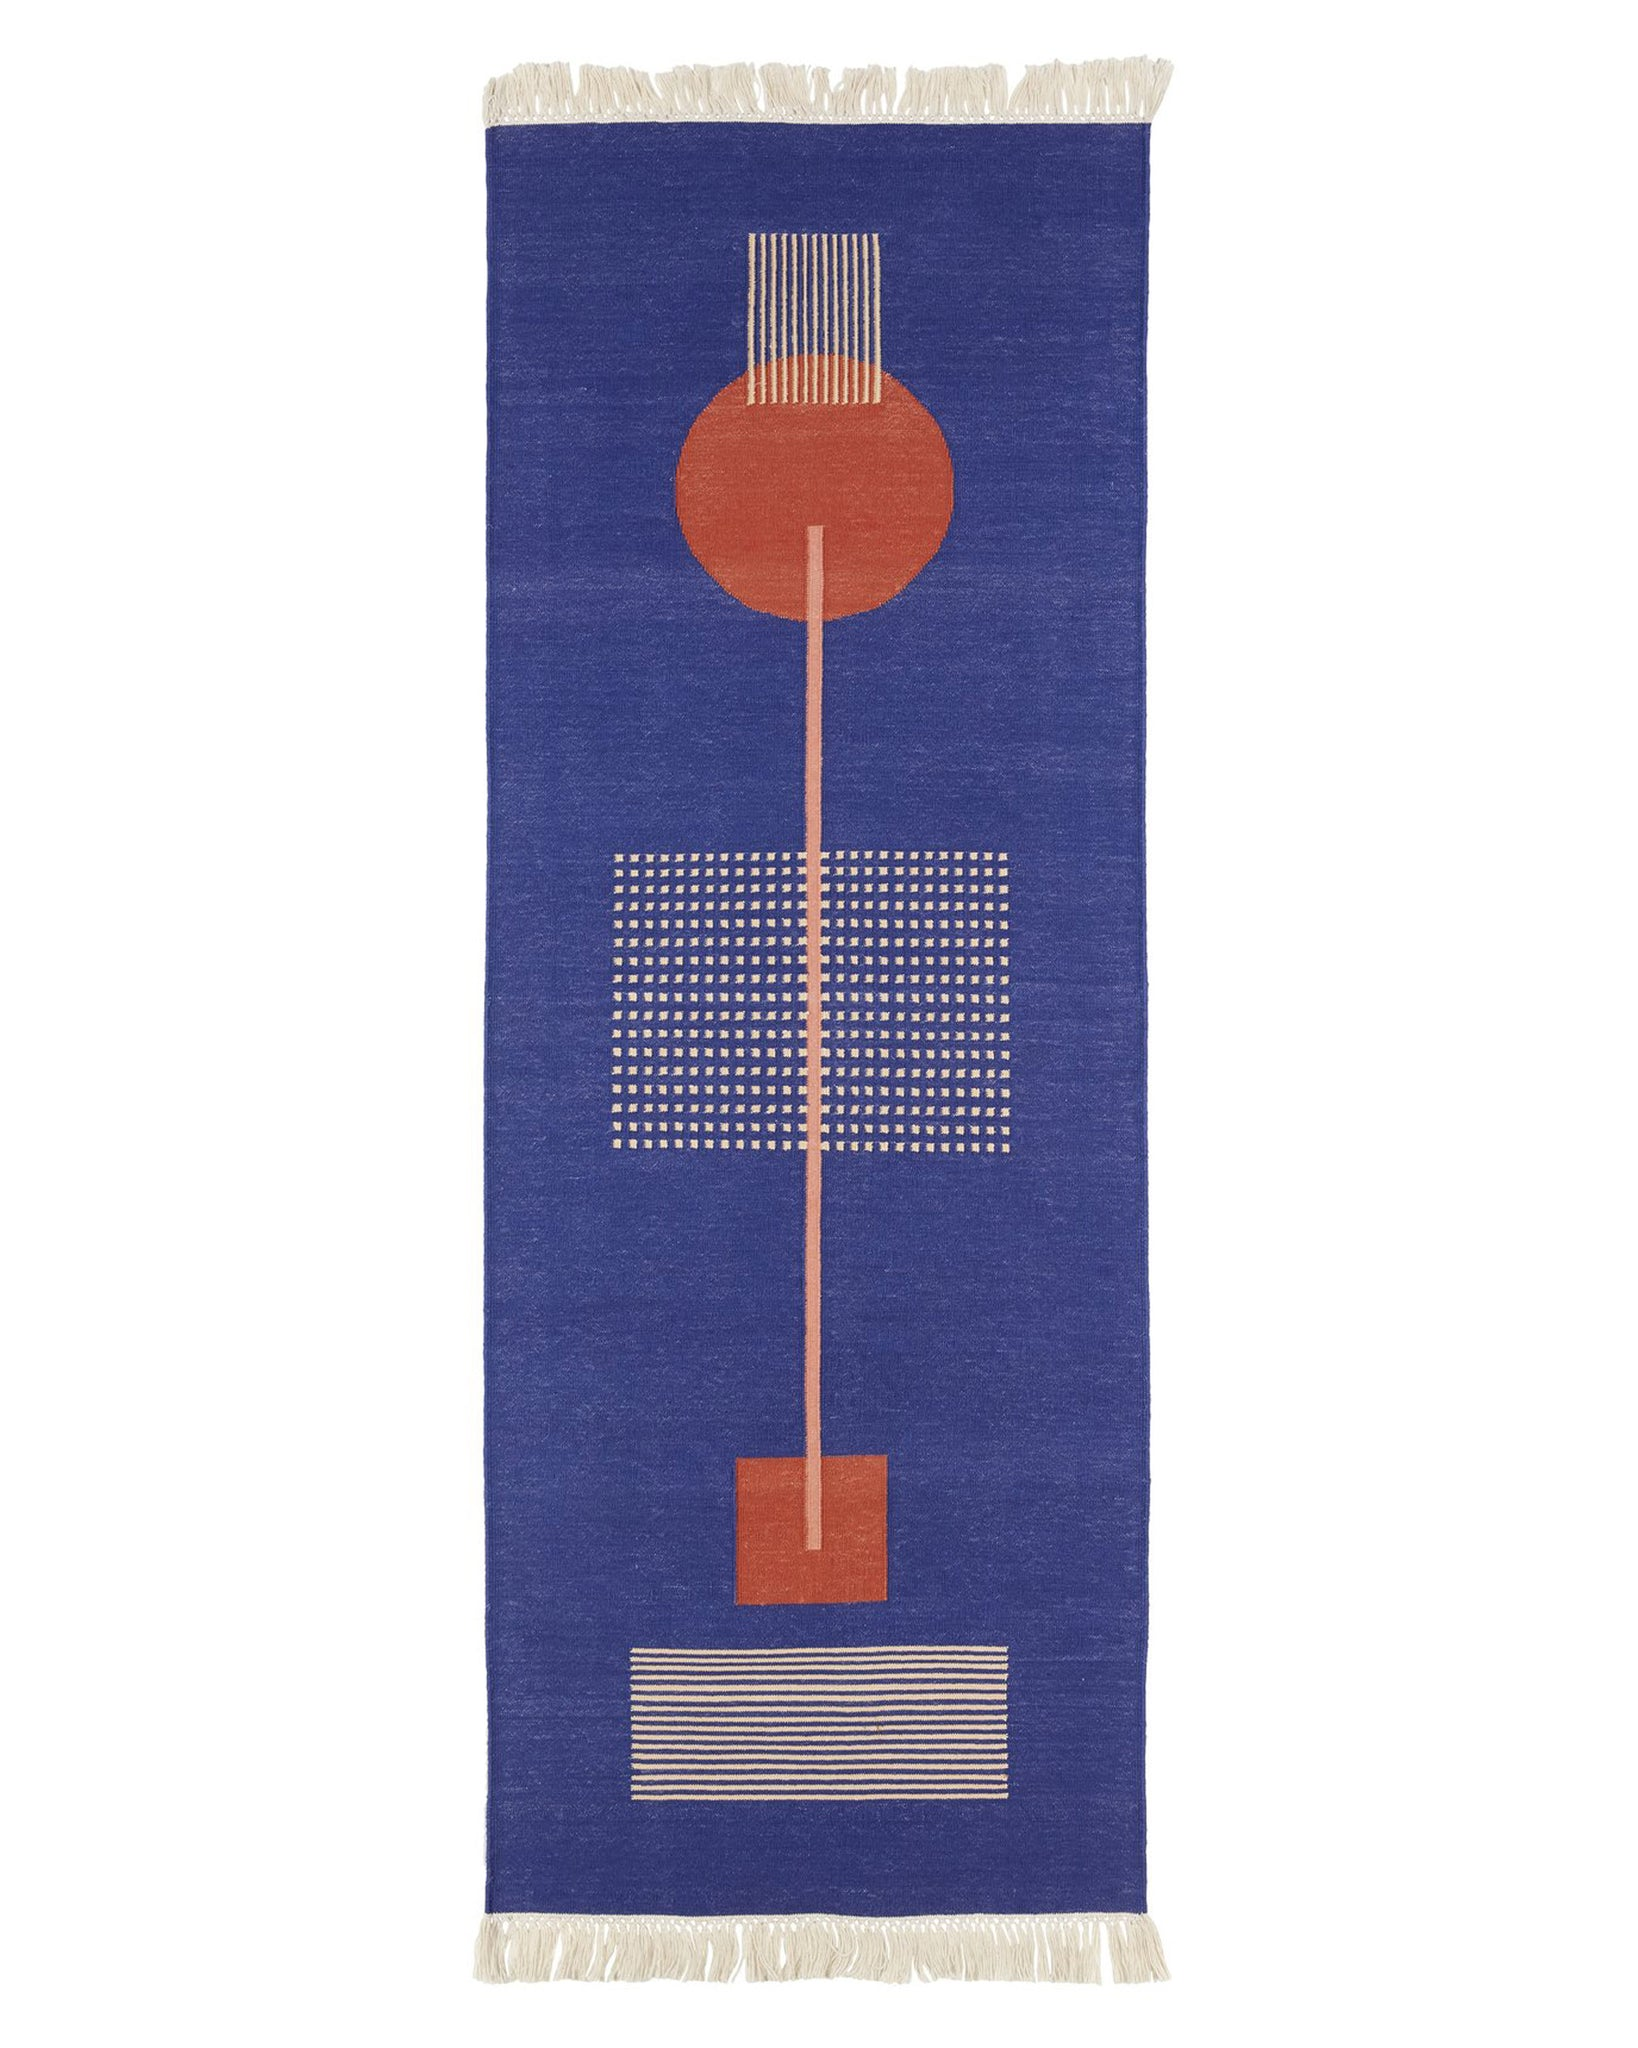 Block Shop Metronome Rug in 4' x 6'